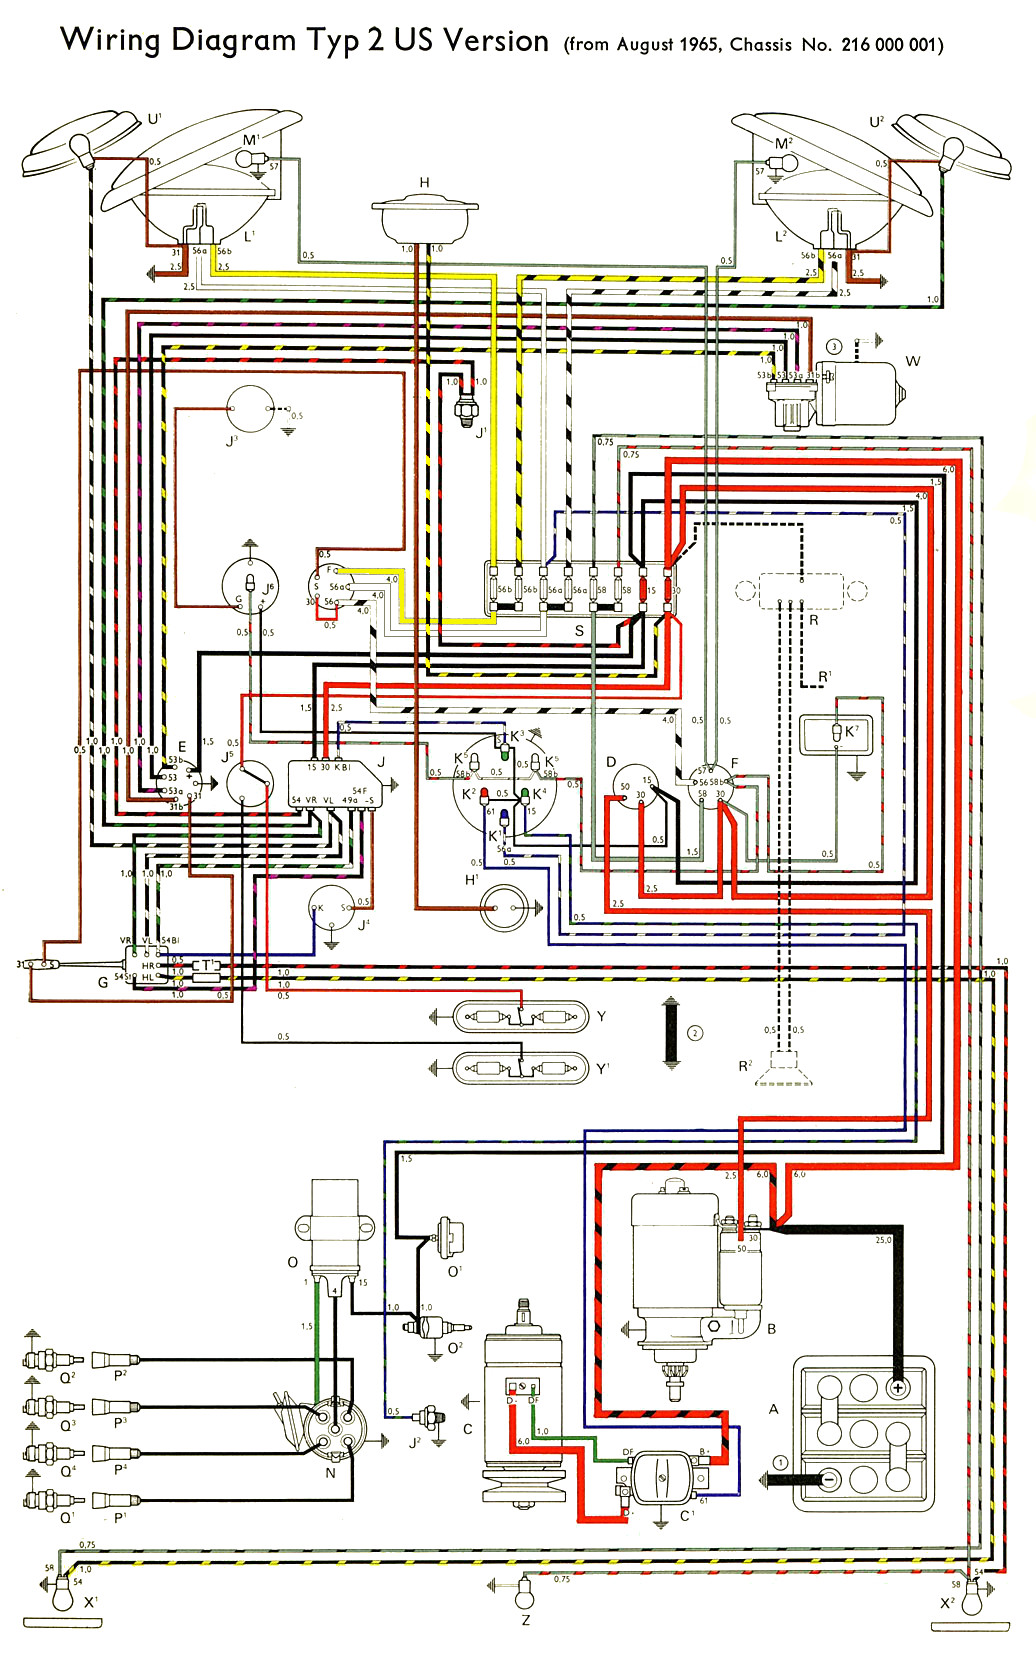 hight resolution of thesamba com type 2 wiring diagrams 97 vw golf fuse diagram vw vanagon fuse diagram